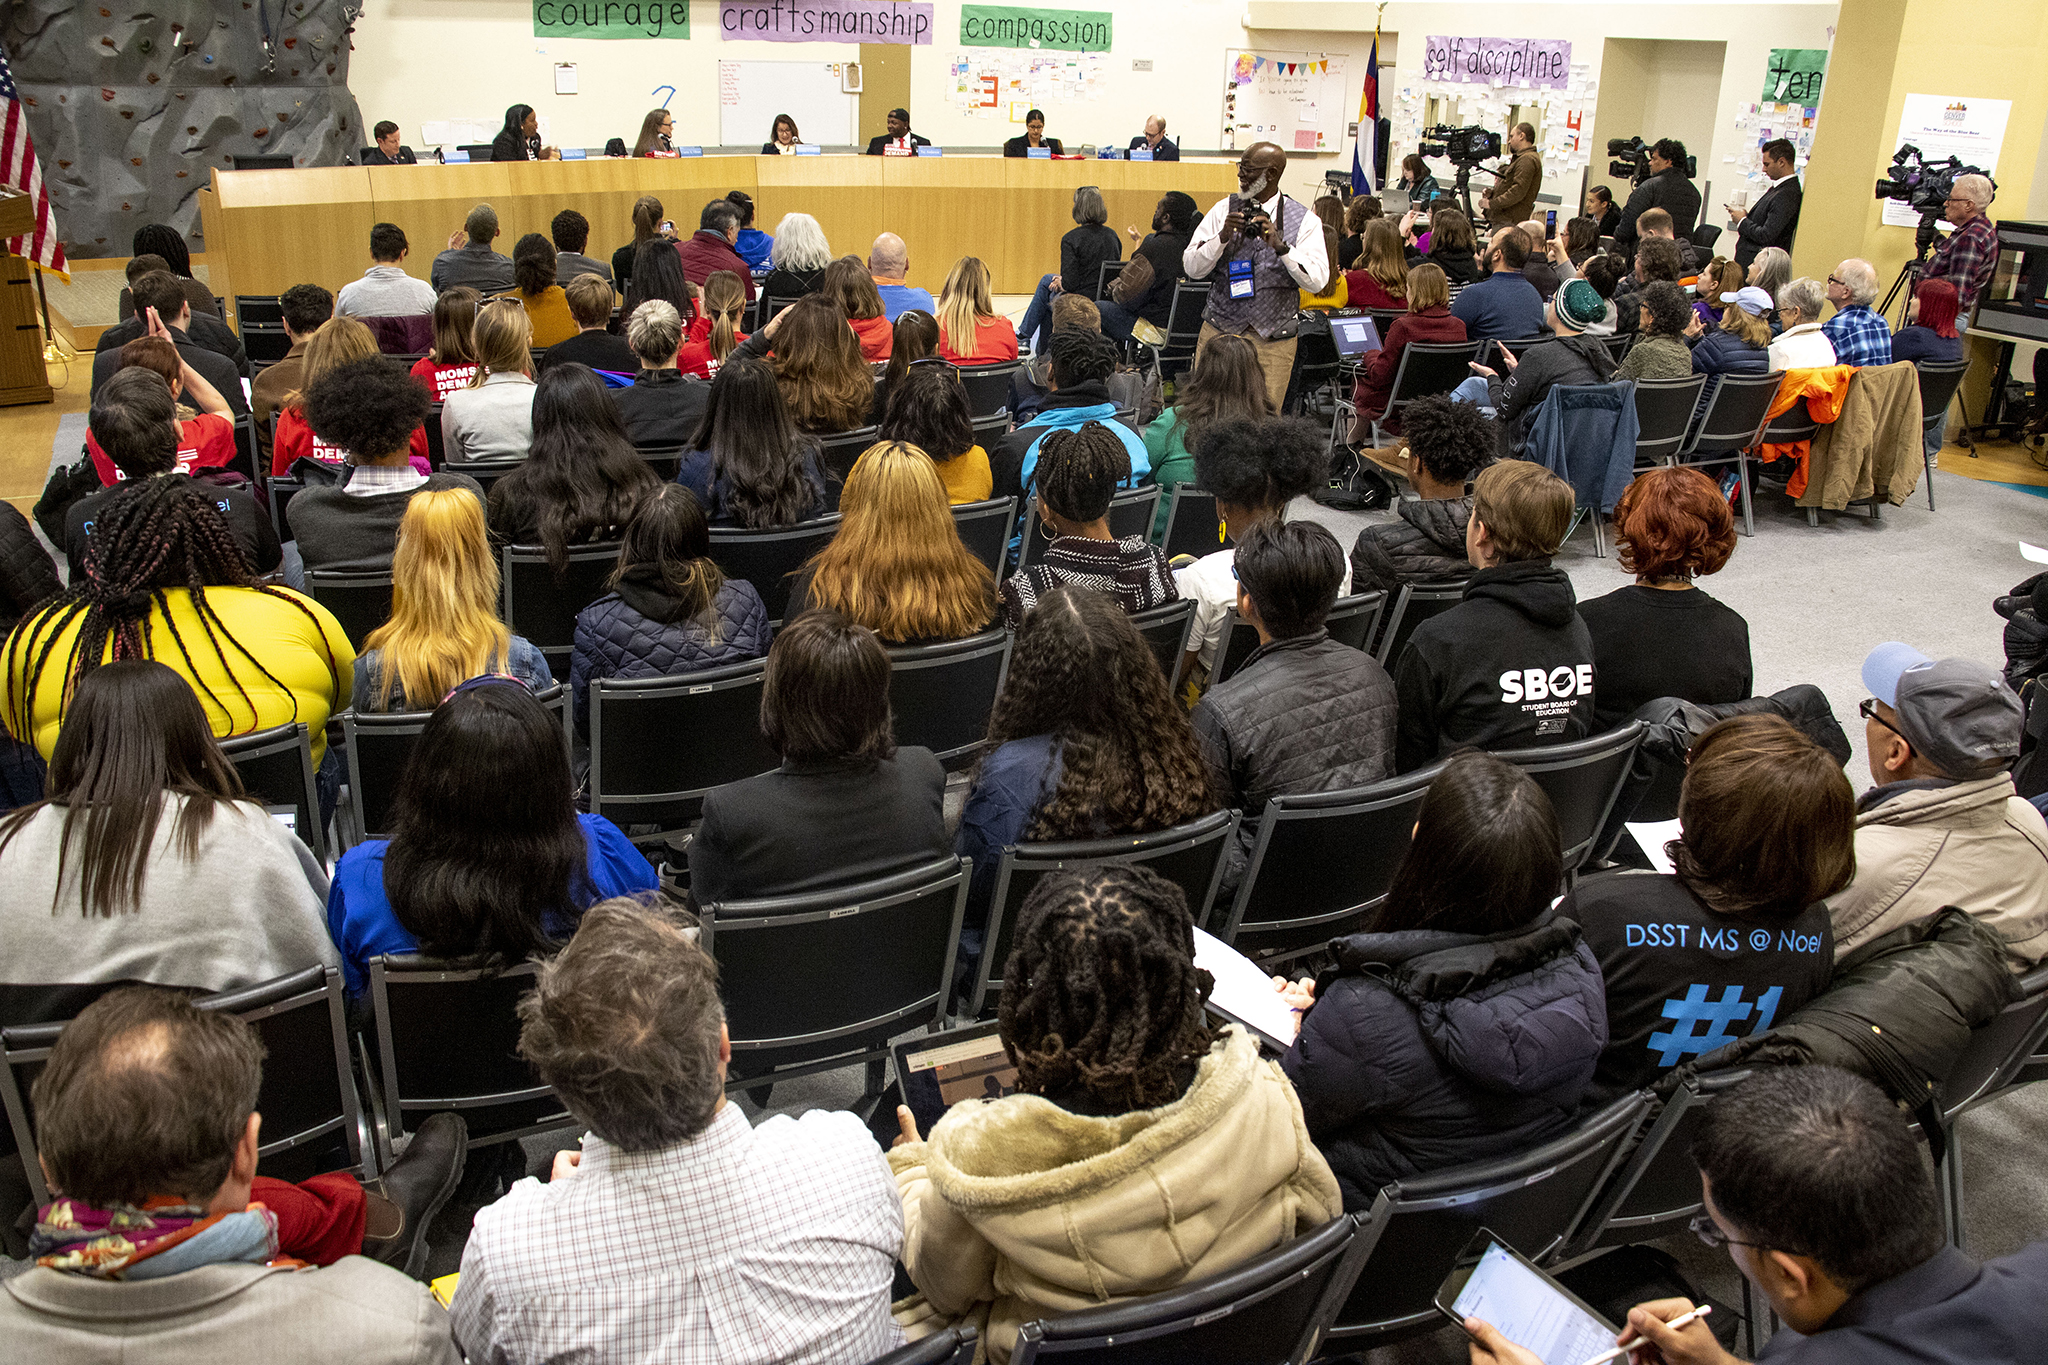 People seated in folding chairs listen to a school board meeting in a gymnasium.